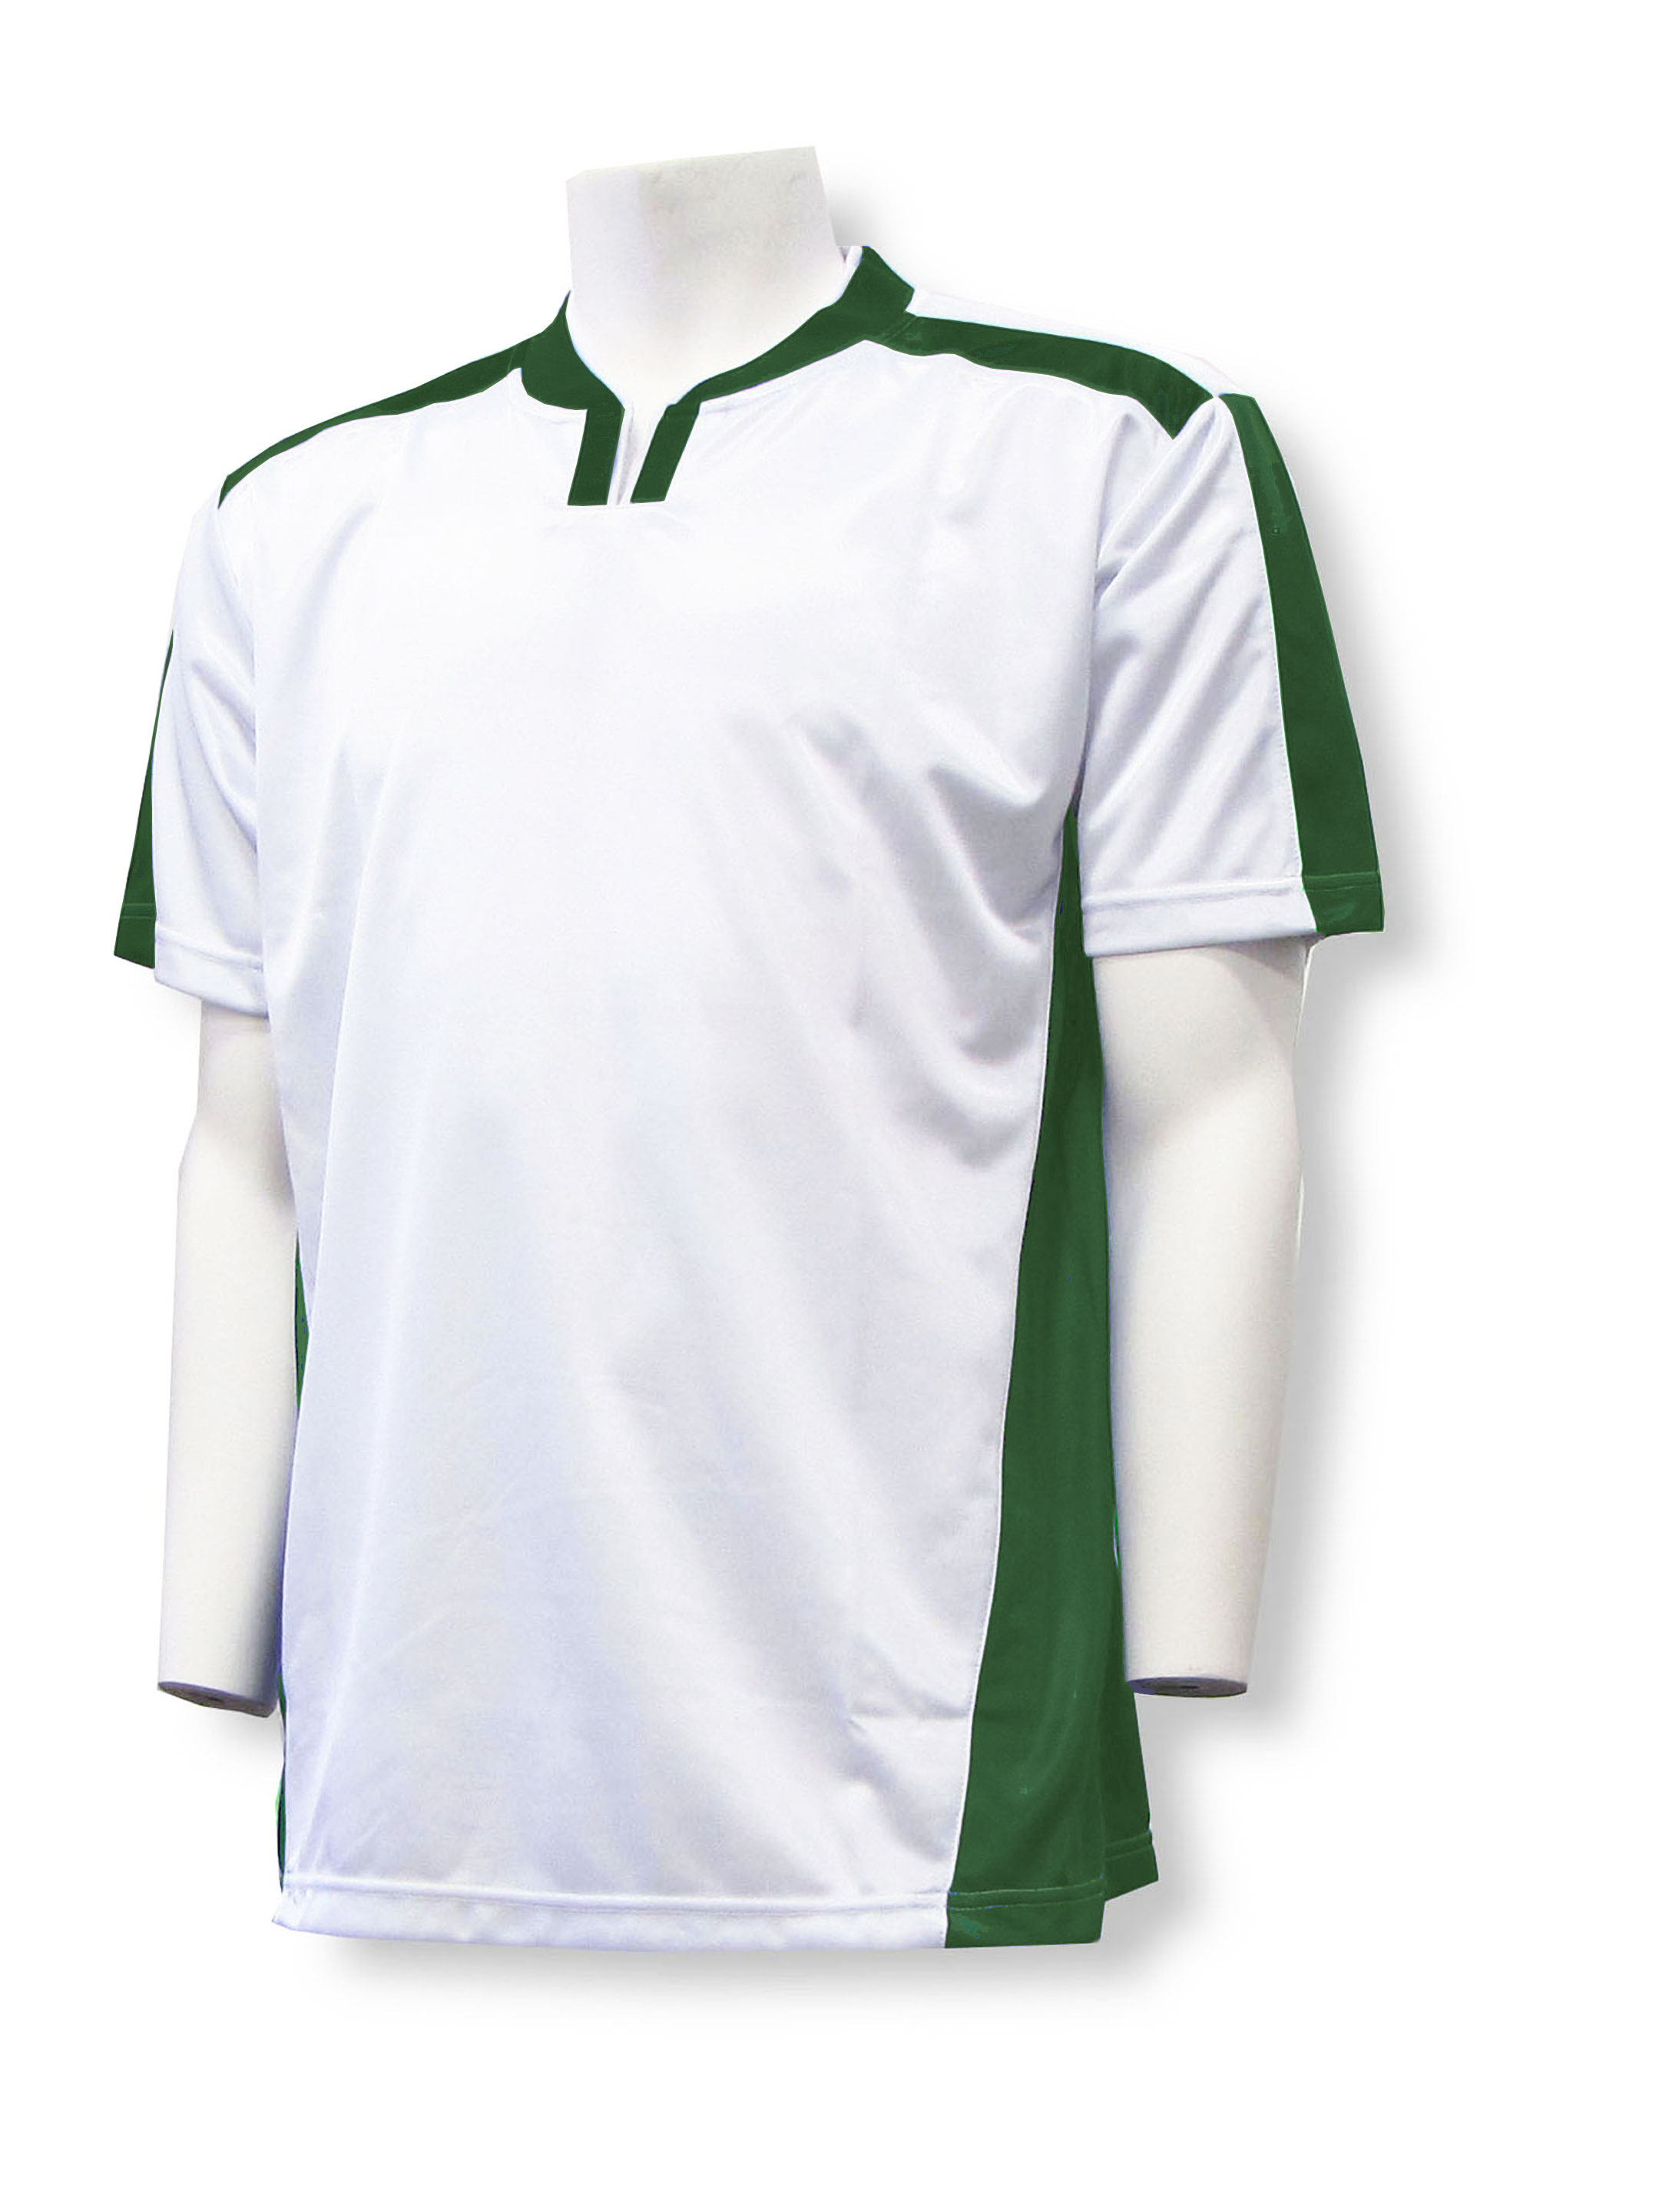 Winchester soccer jersey in white/forest by Code Four Athletics